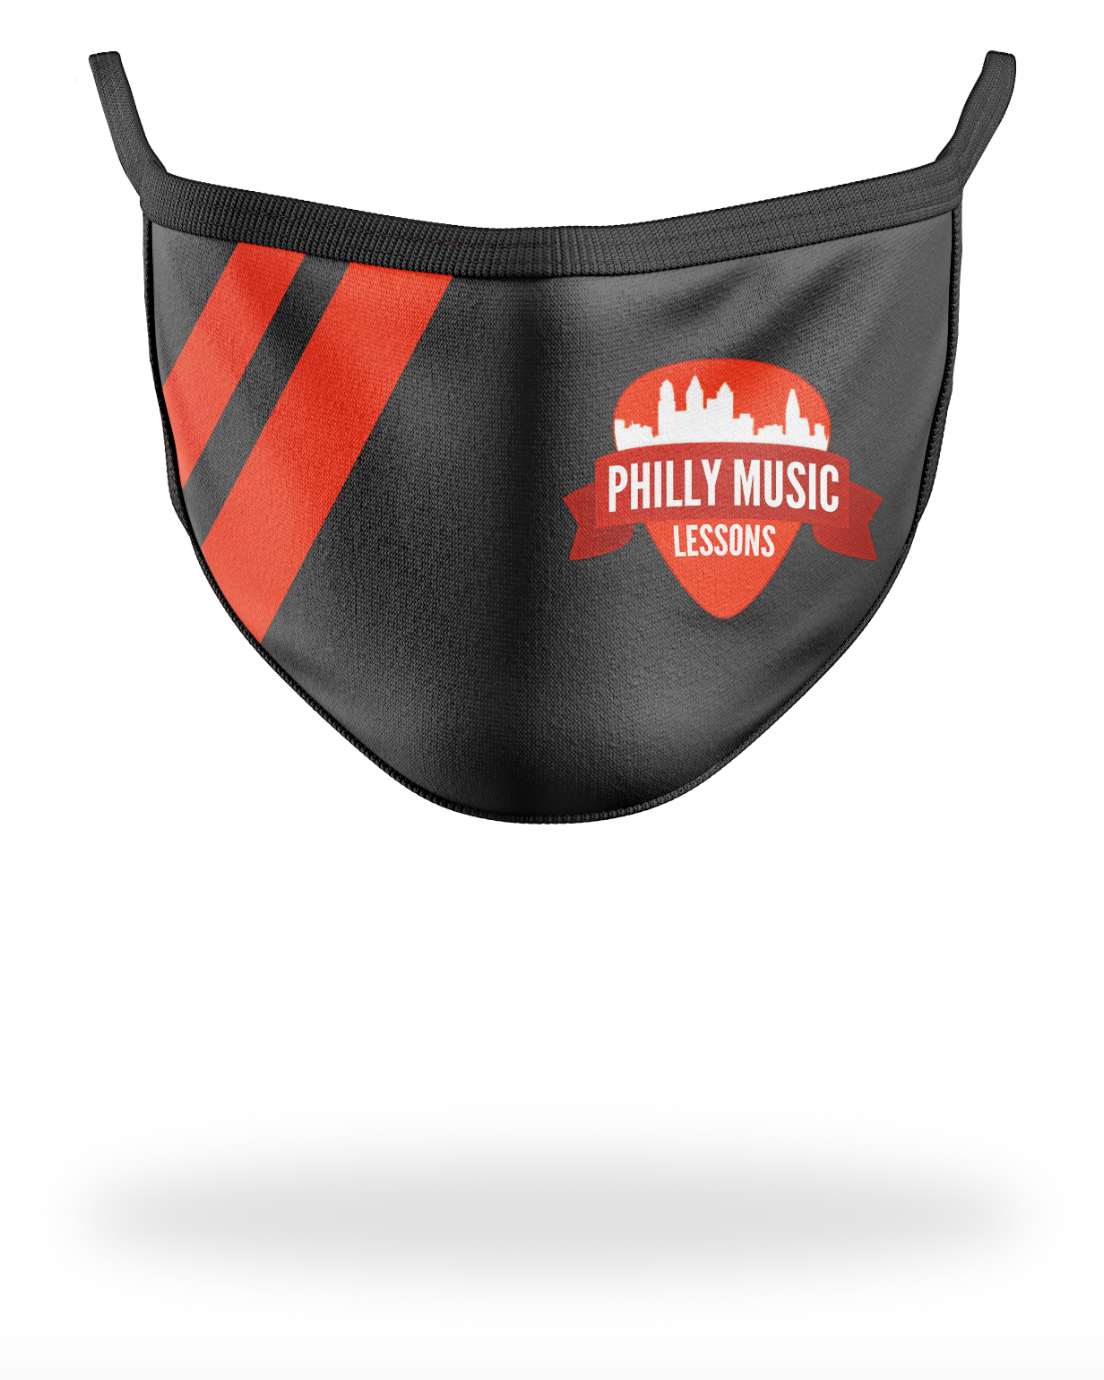 Philly Music Lessons Mask v1